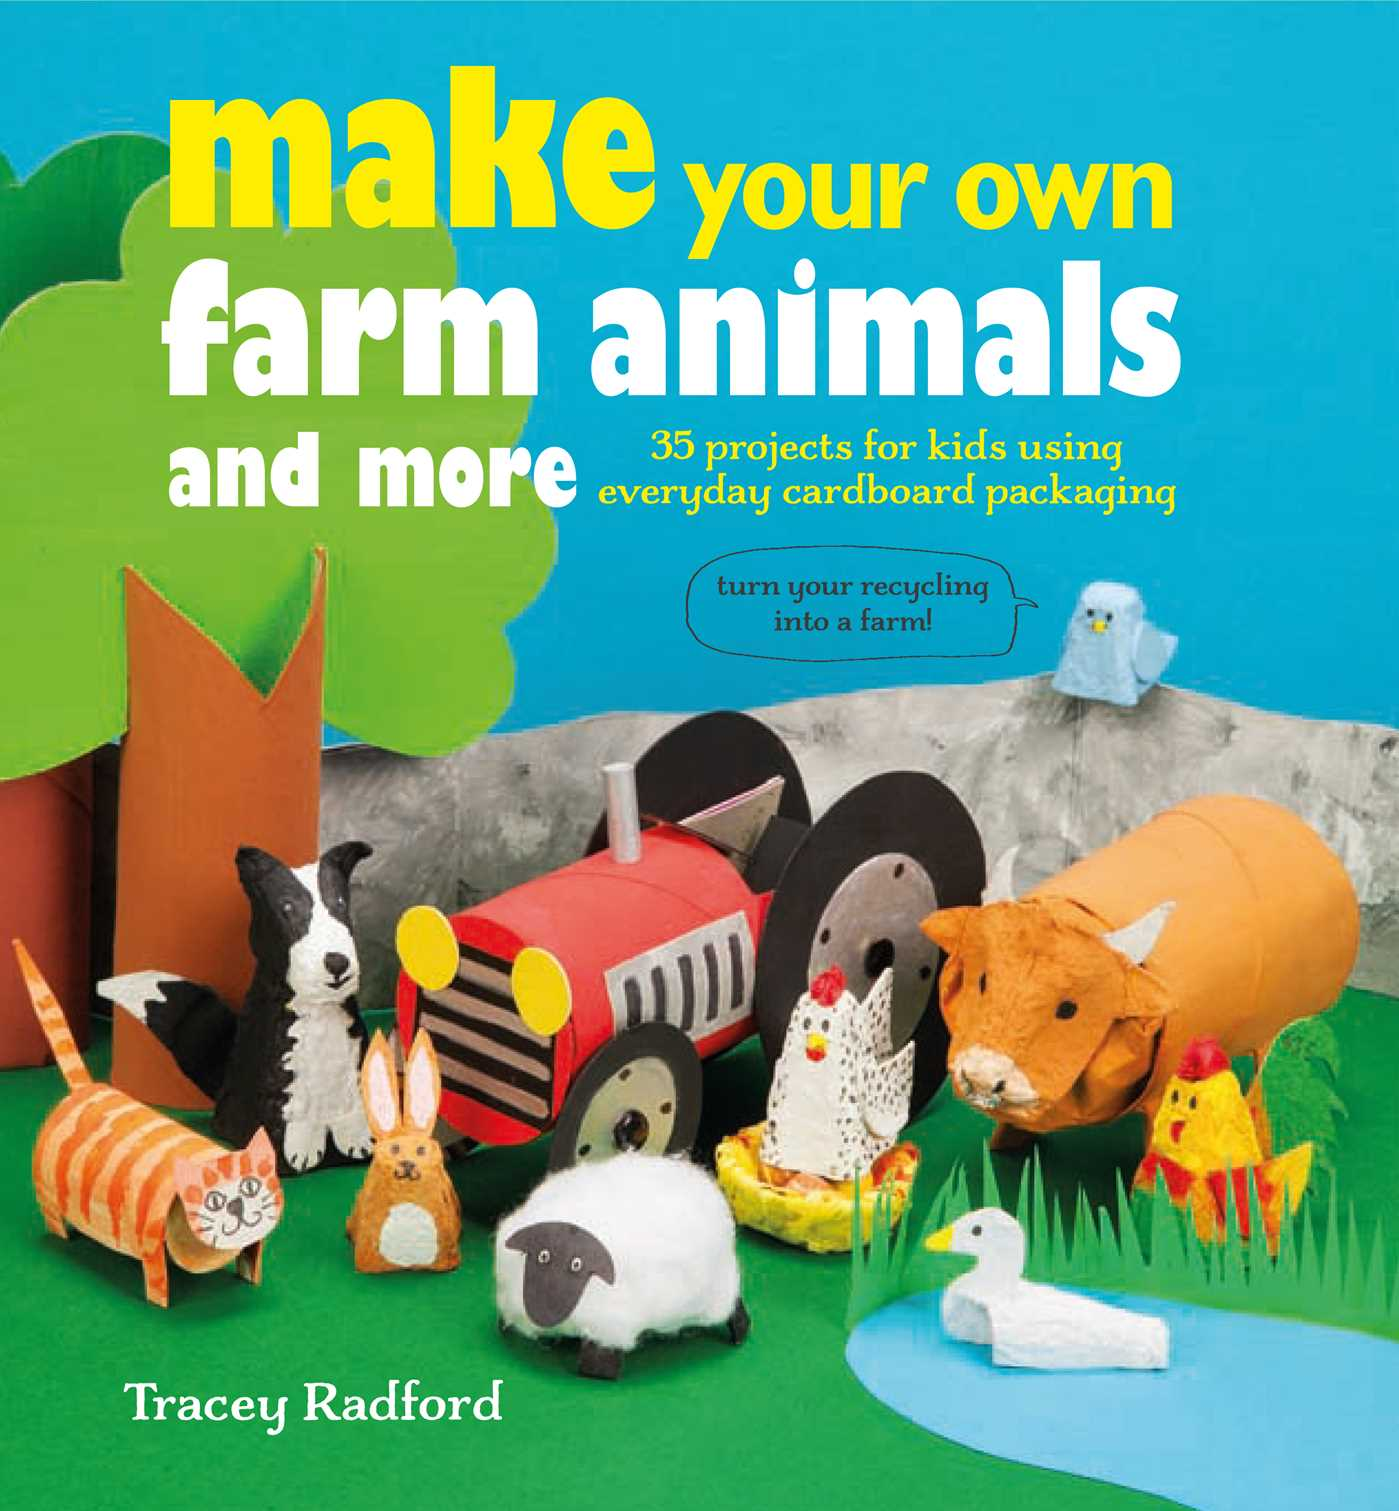 Make your own farm animals and more 9781782494218 hr